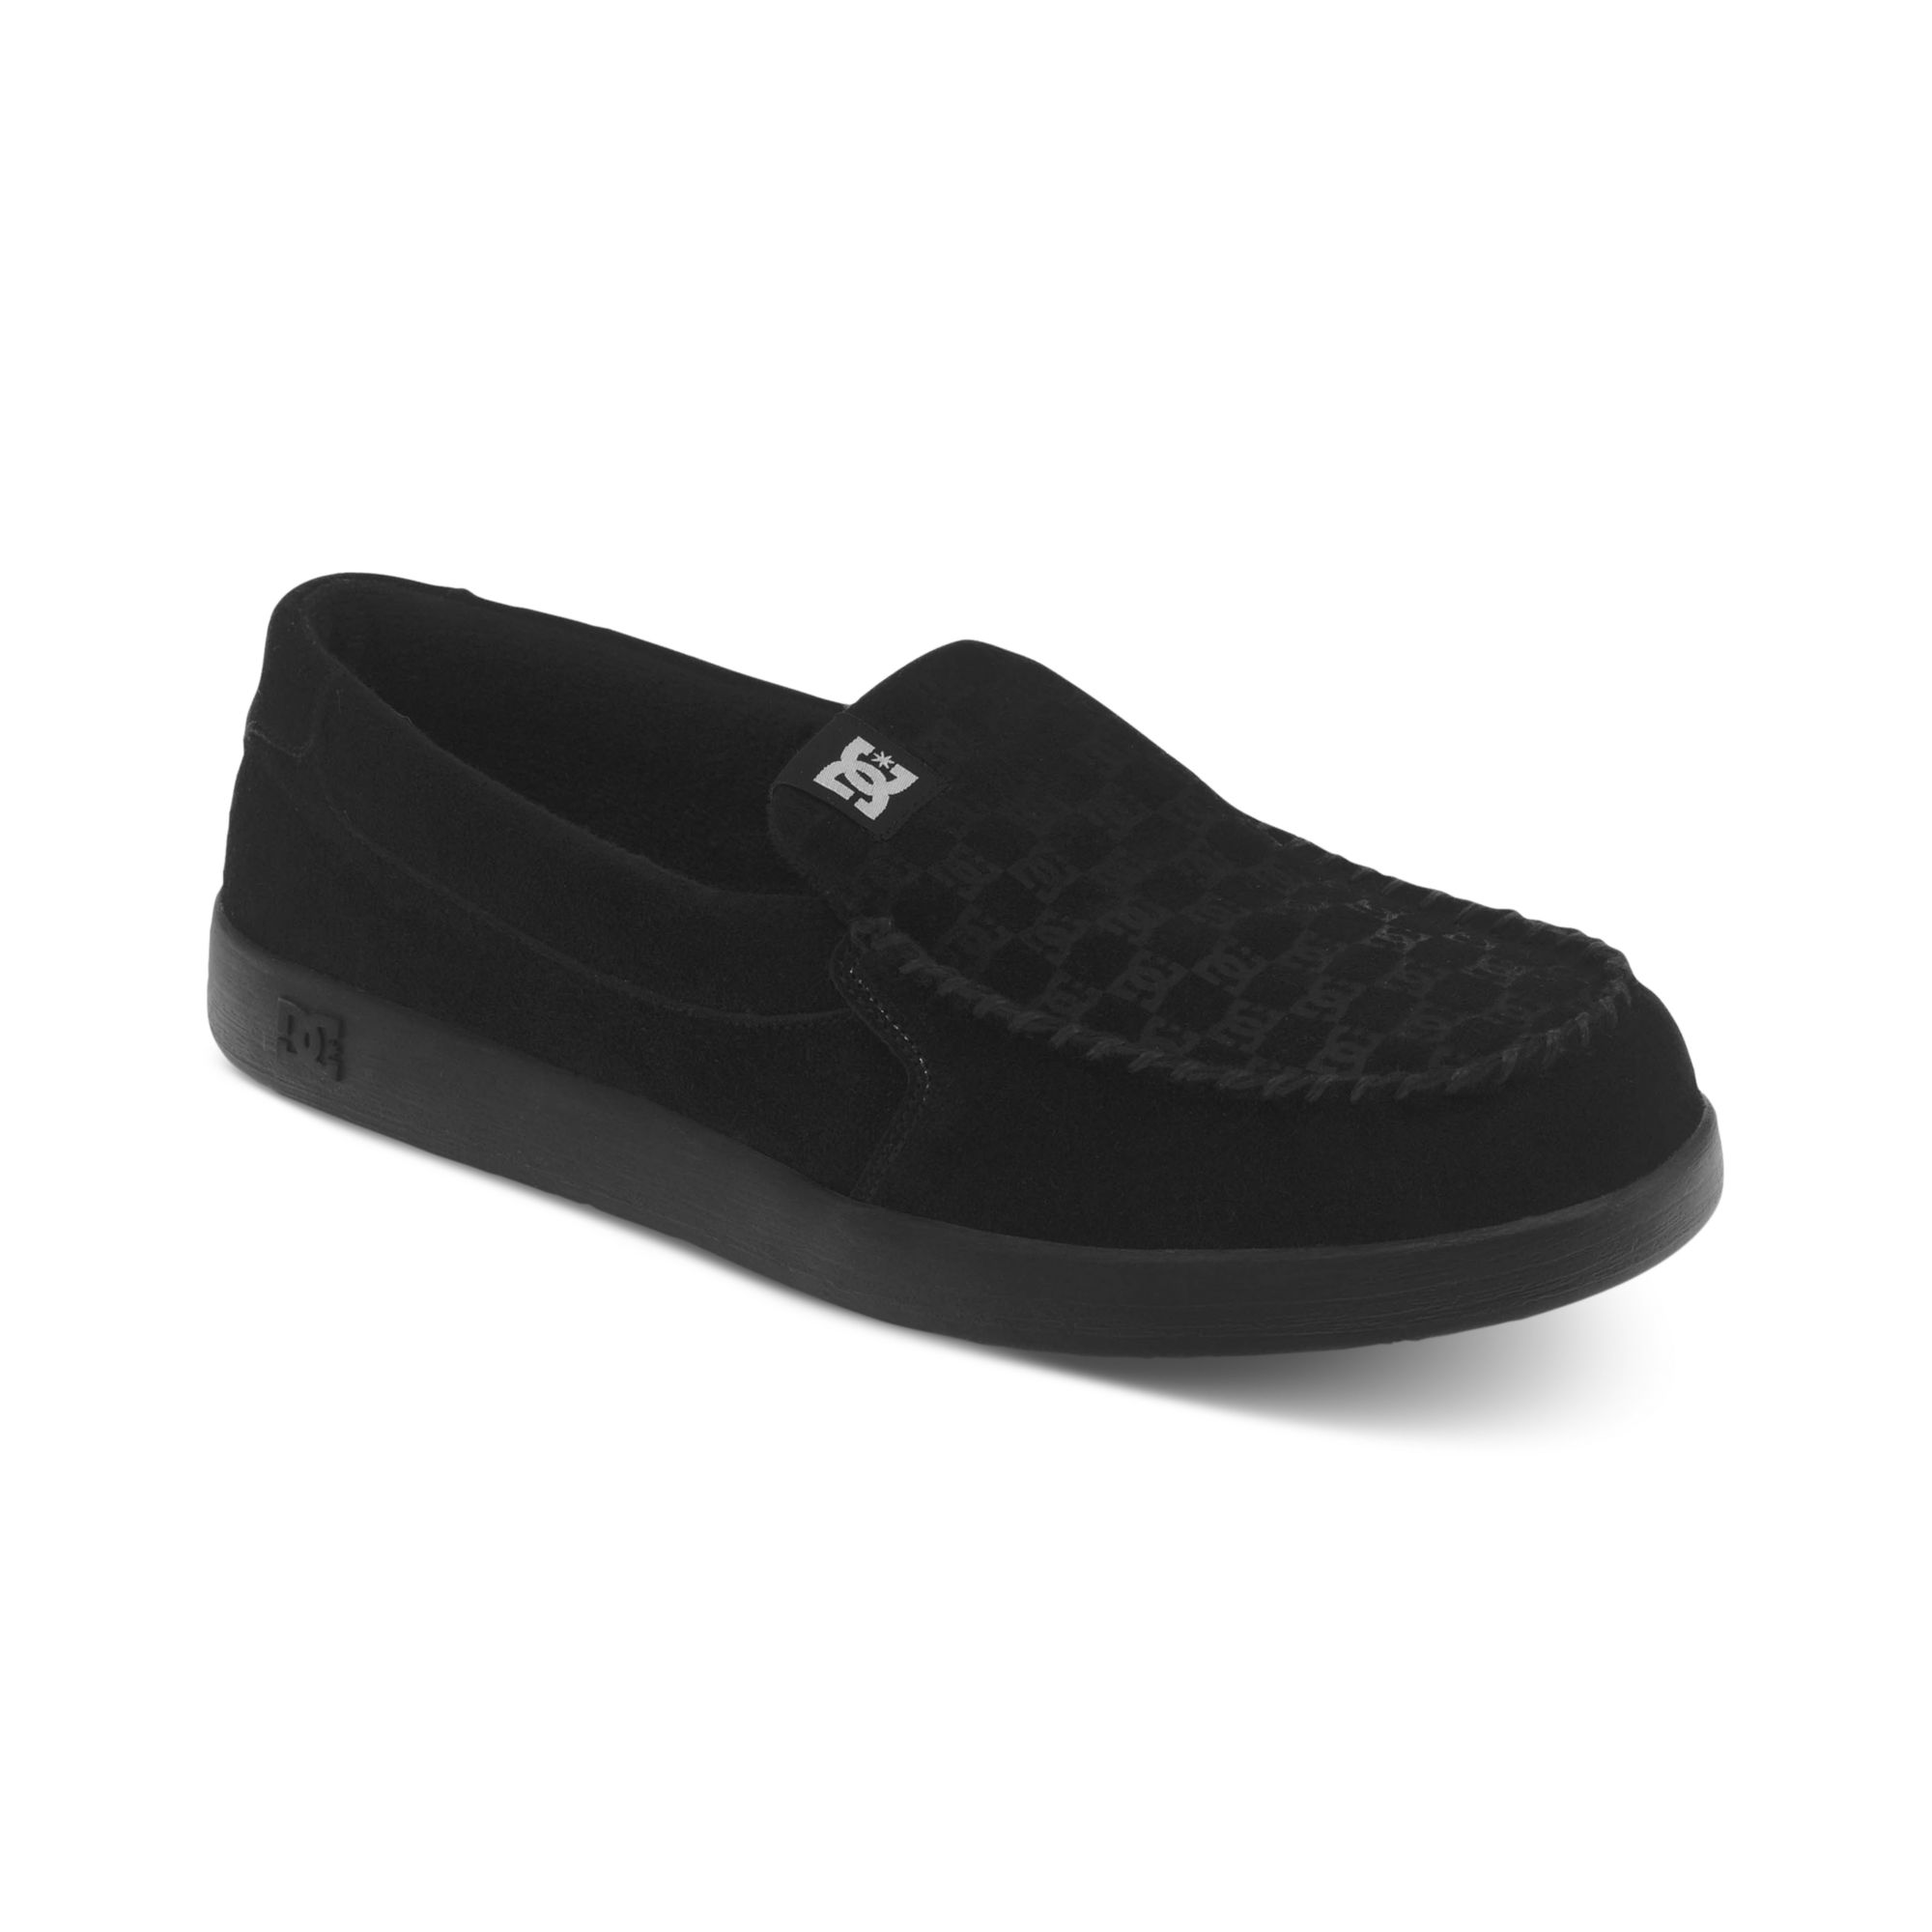 dc shoes villain slip on sneakers in black for lyst